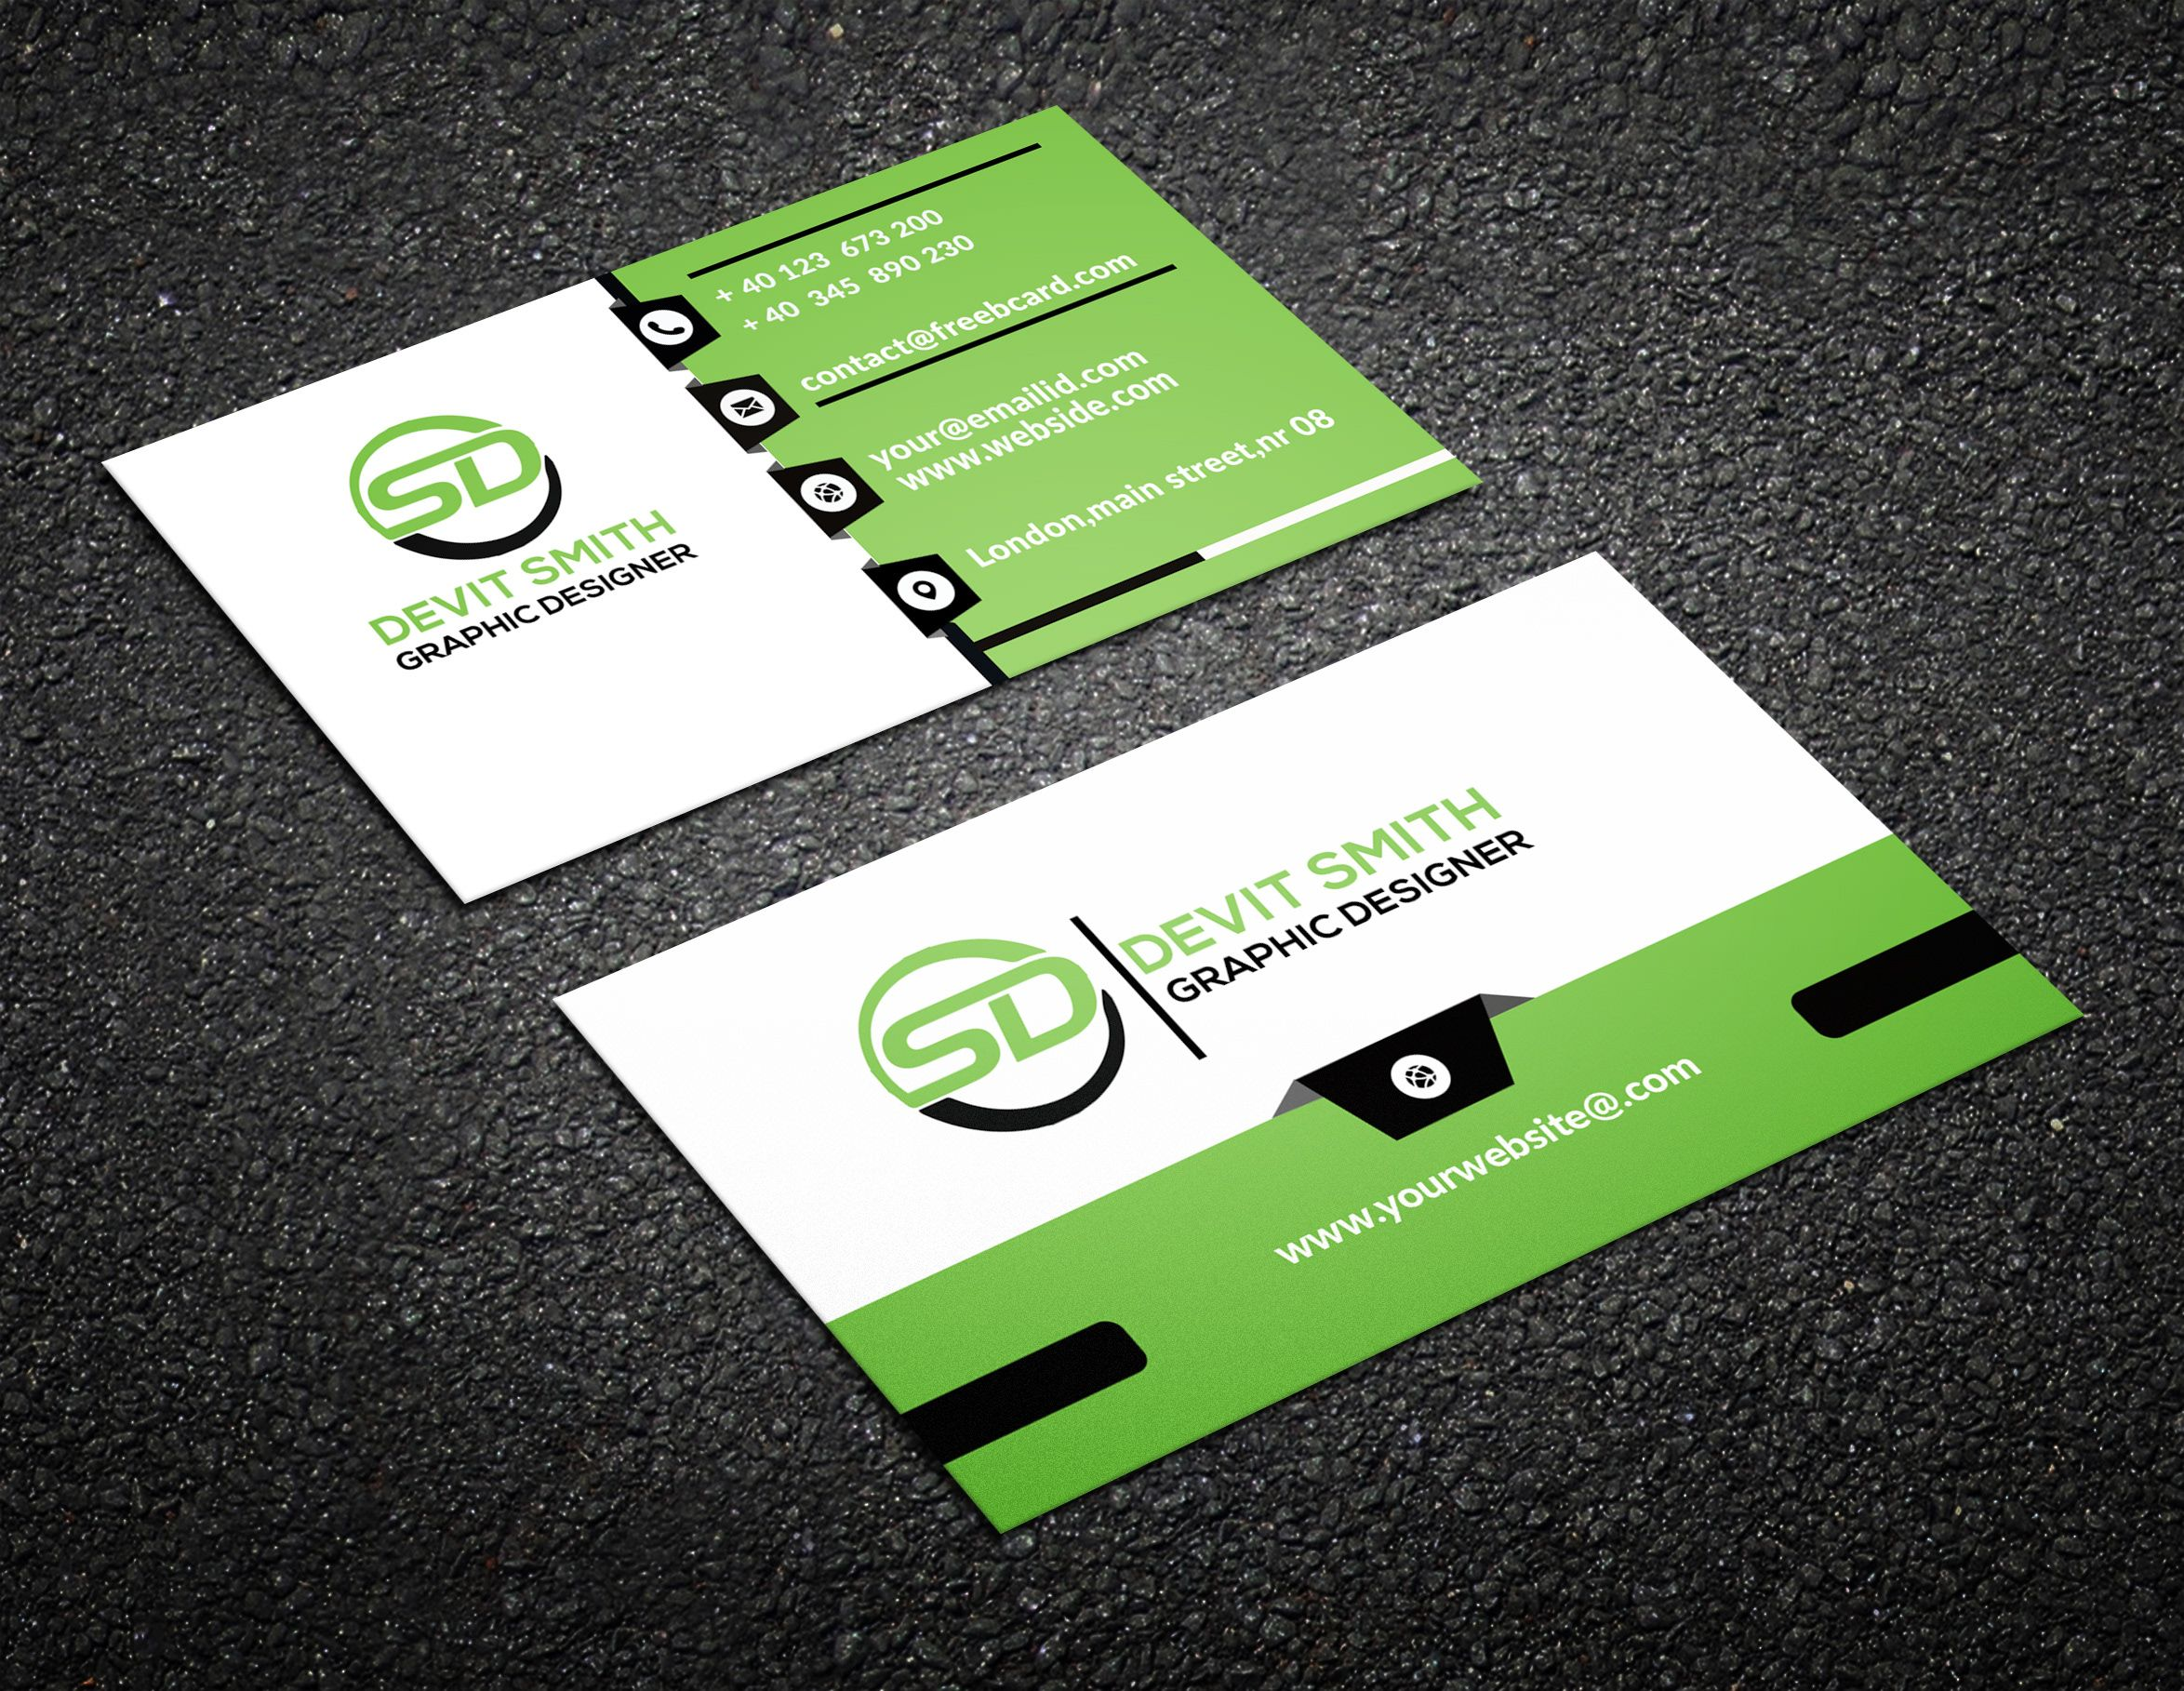 Check Out My Behance Project Corporate Business Card Design Https Www Behance Business Card Design Corporate Business Card Design Corporate Business Card